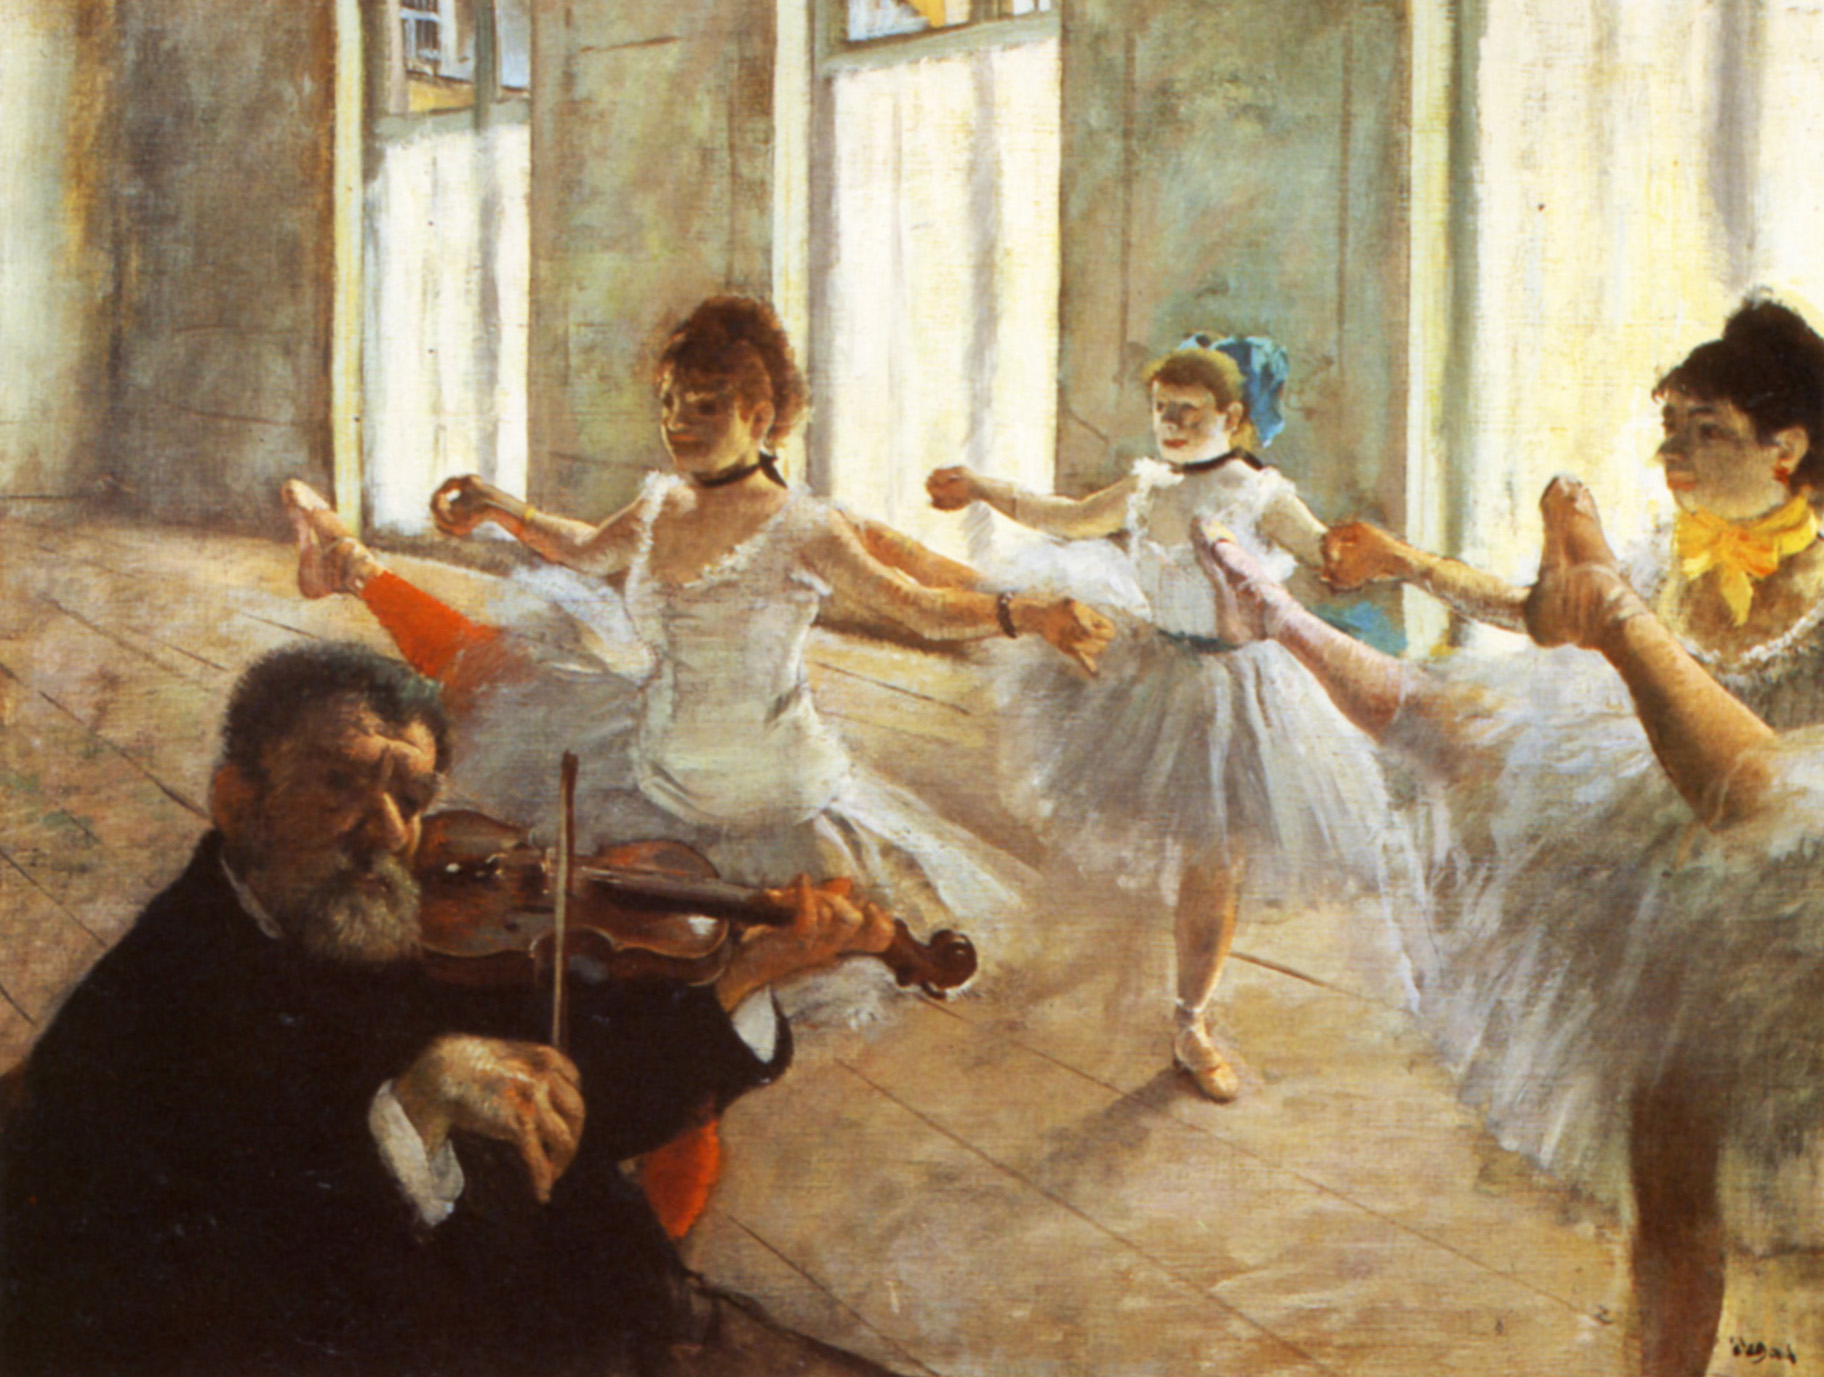 the life and works of edgar degas Known for his famous paintings of parisian life and ballet dancers, french artist edgar degas helped establish the impressionist movement in art during the nineteenth century.